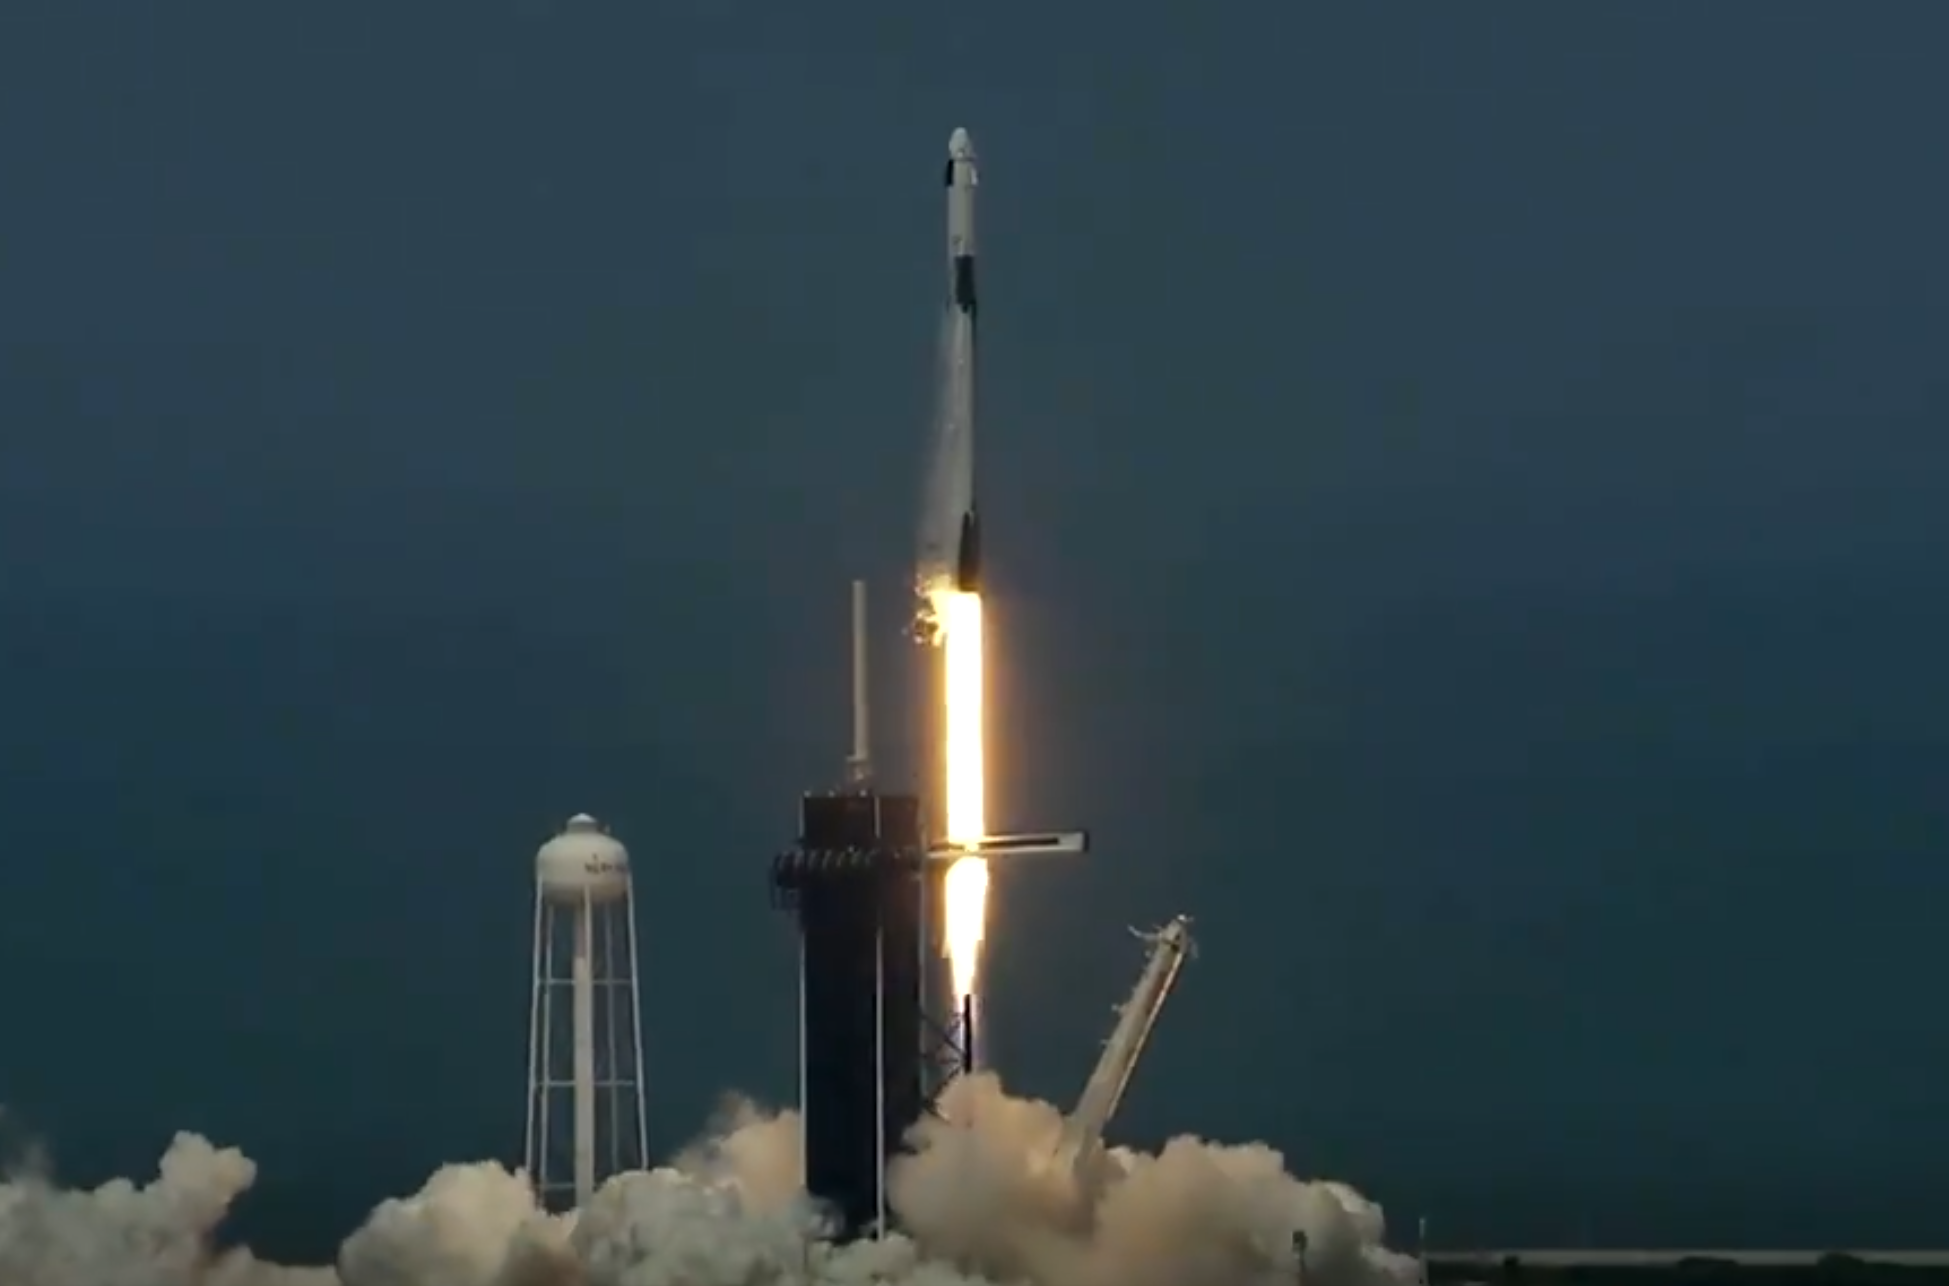 Falcon 9 booster lifts off from Kennedy Space Centrer in Florida to take Crew Dragon capsule into orbit. Image credit: SpaceX